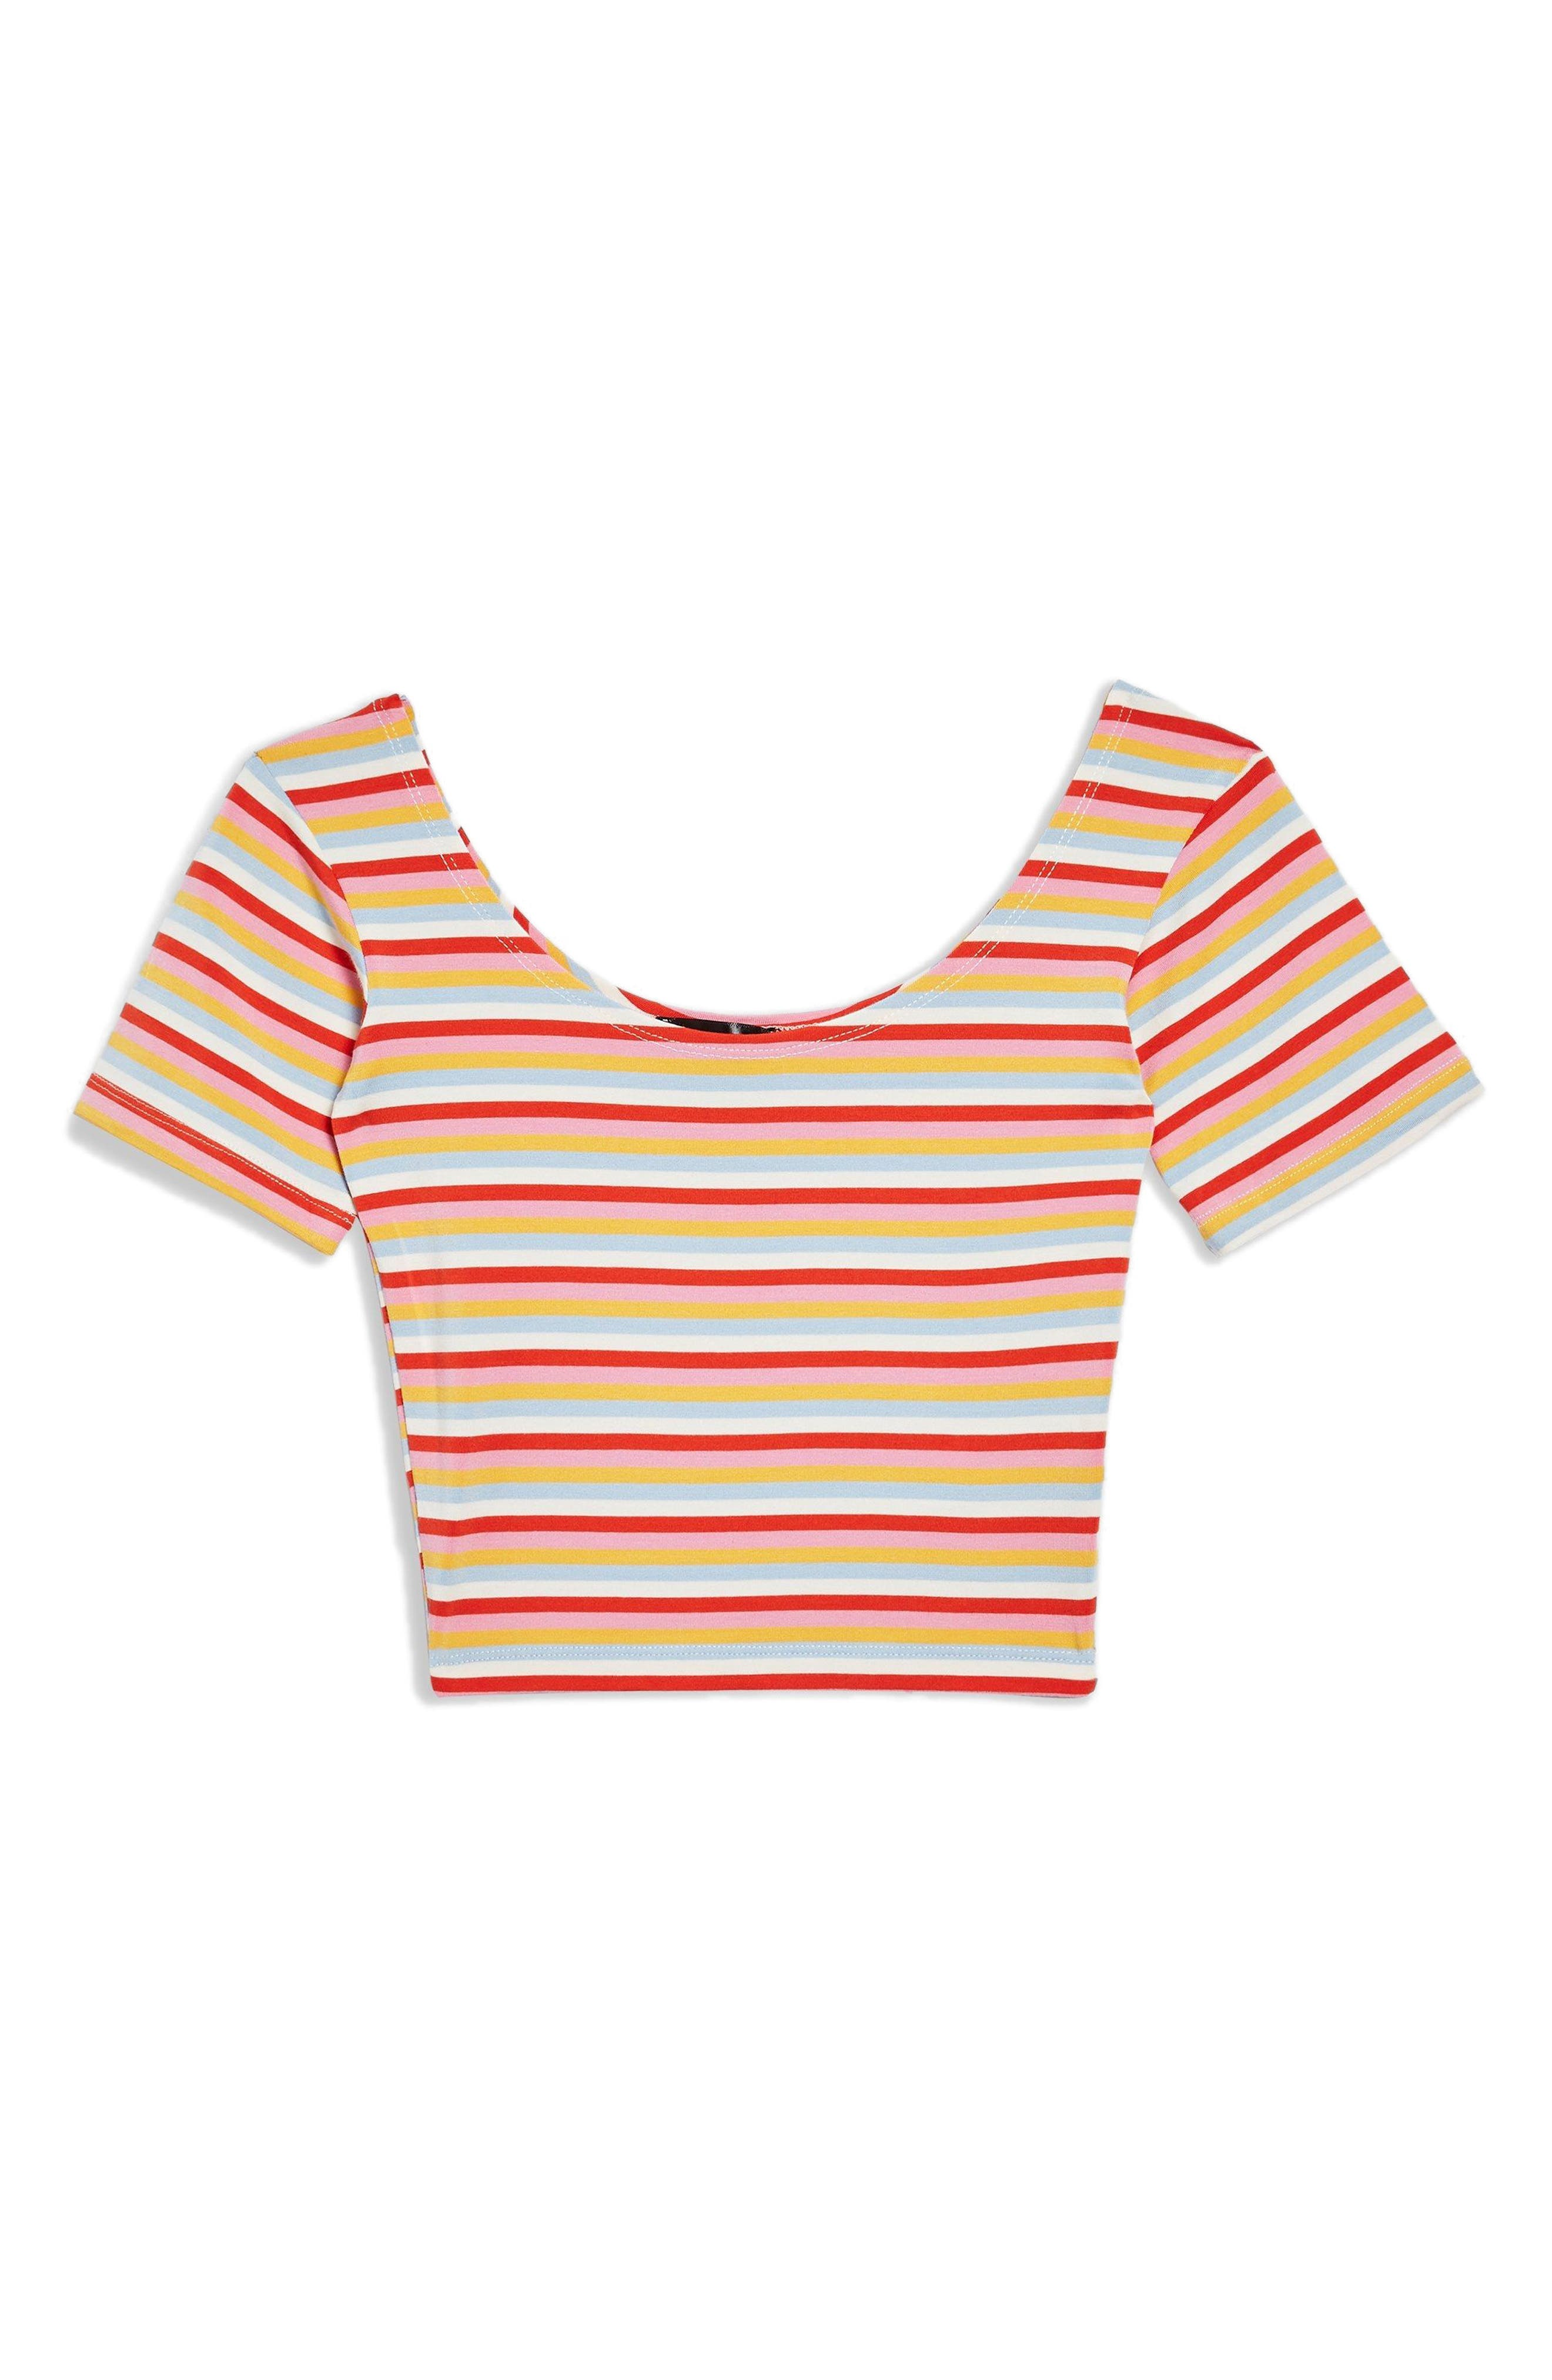 Stripe Crop Top,                             Alternate thumbnail 4, color,                             Red Mutli